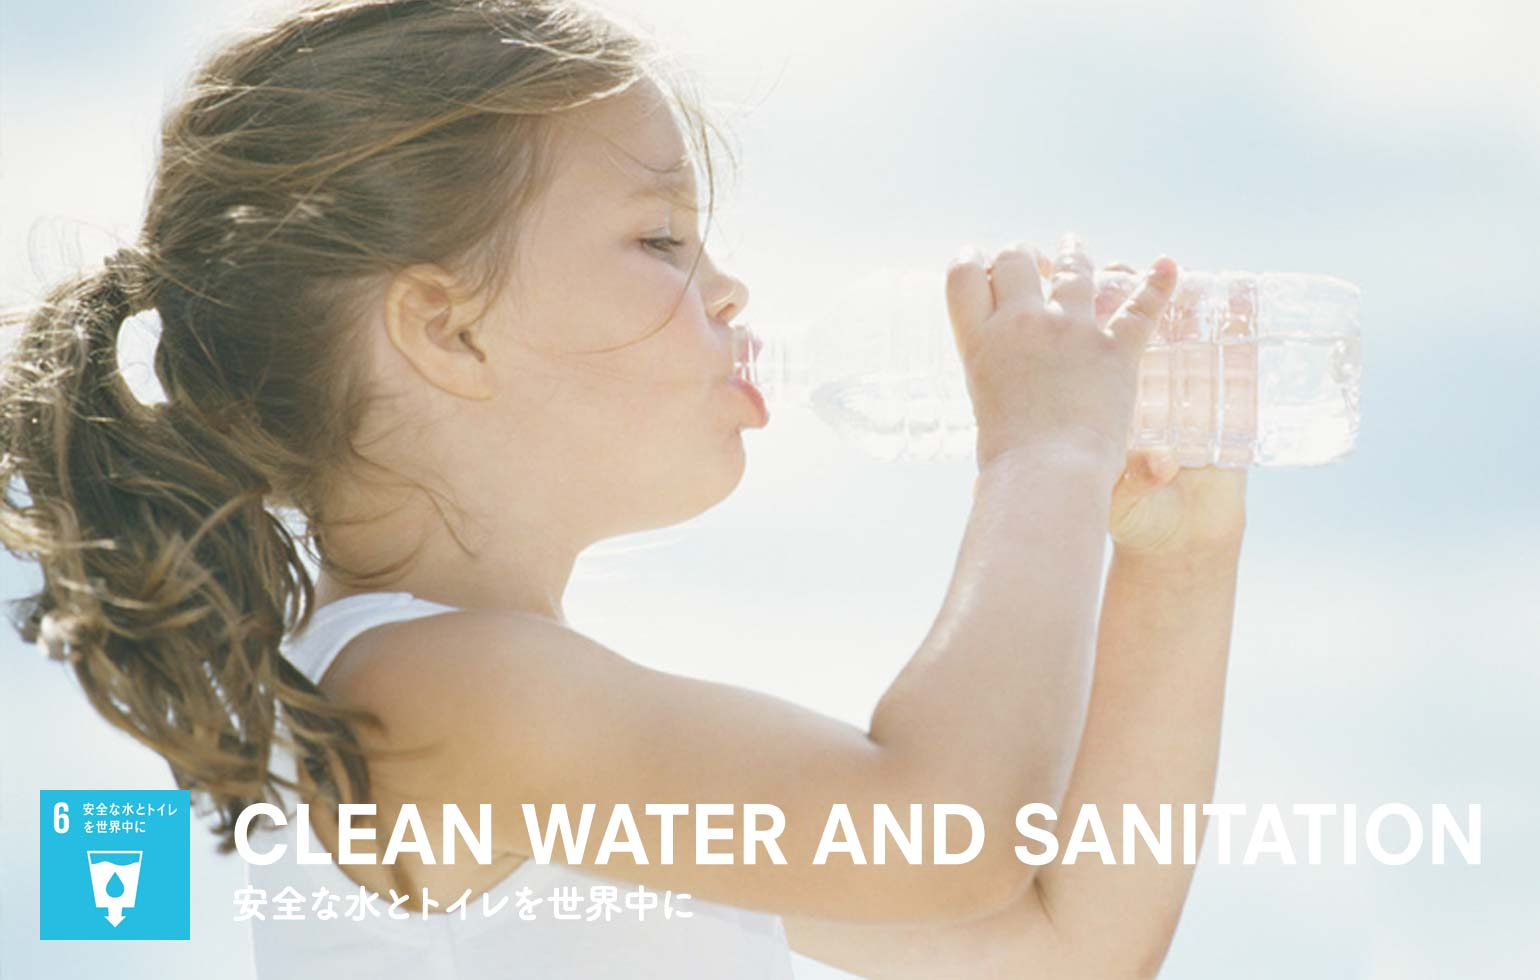 CLEAN WATER AND SANITATION - 安全な水とトイレを世界中に SDGs 画像素材